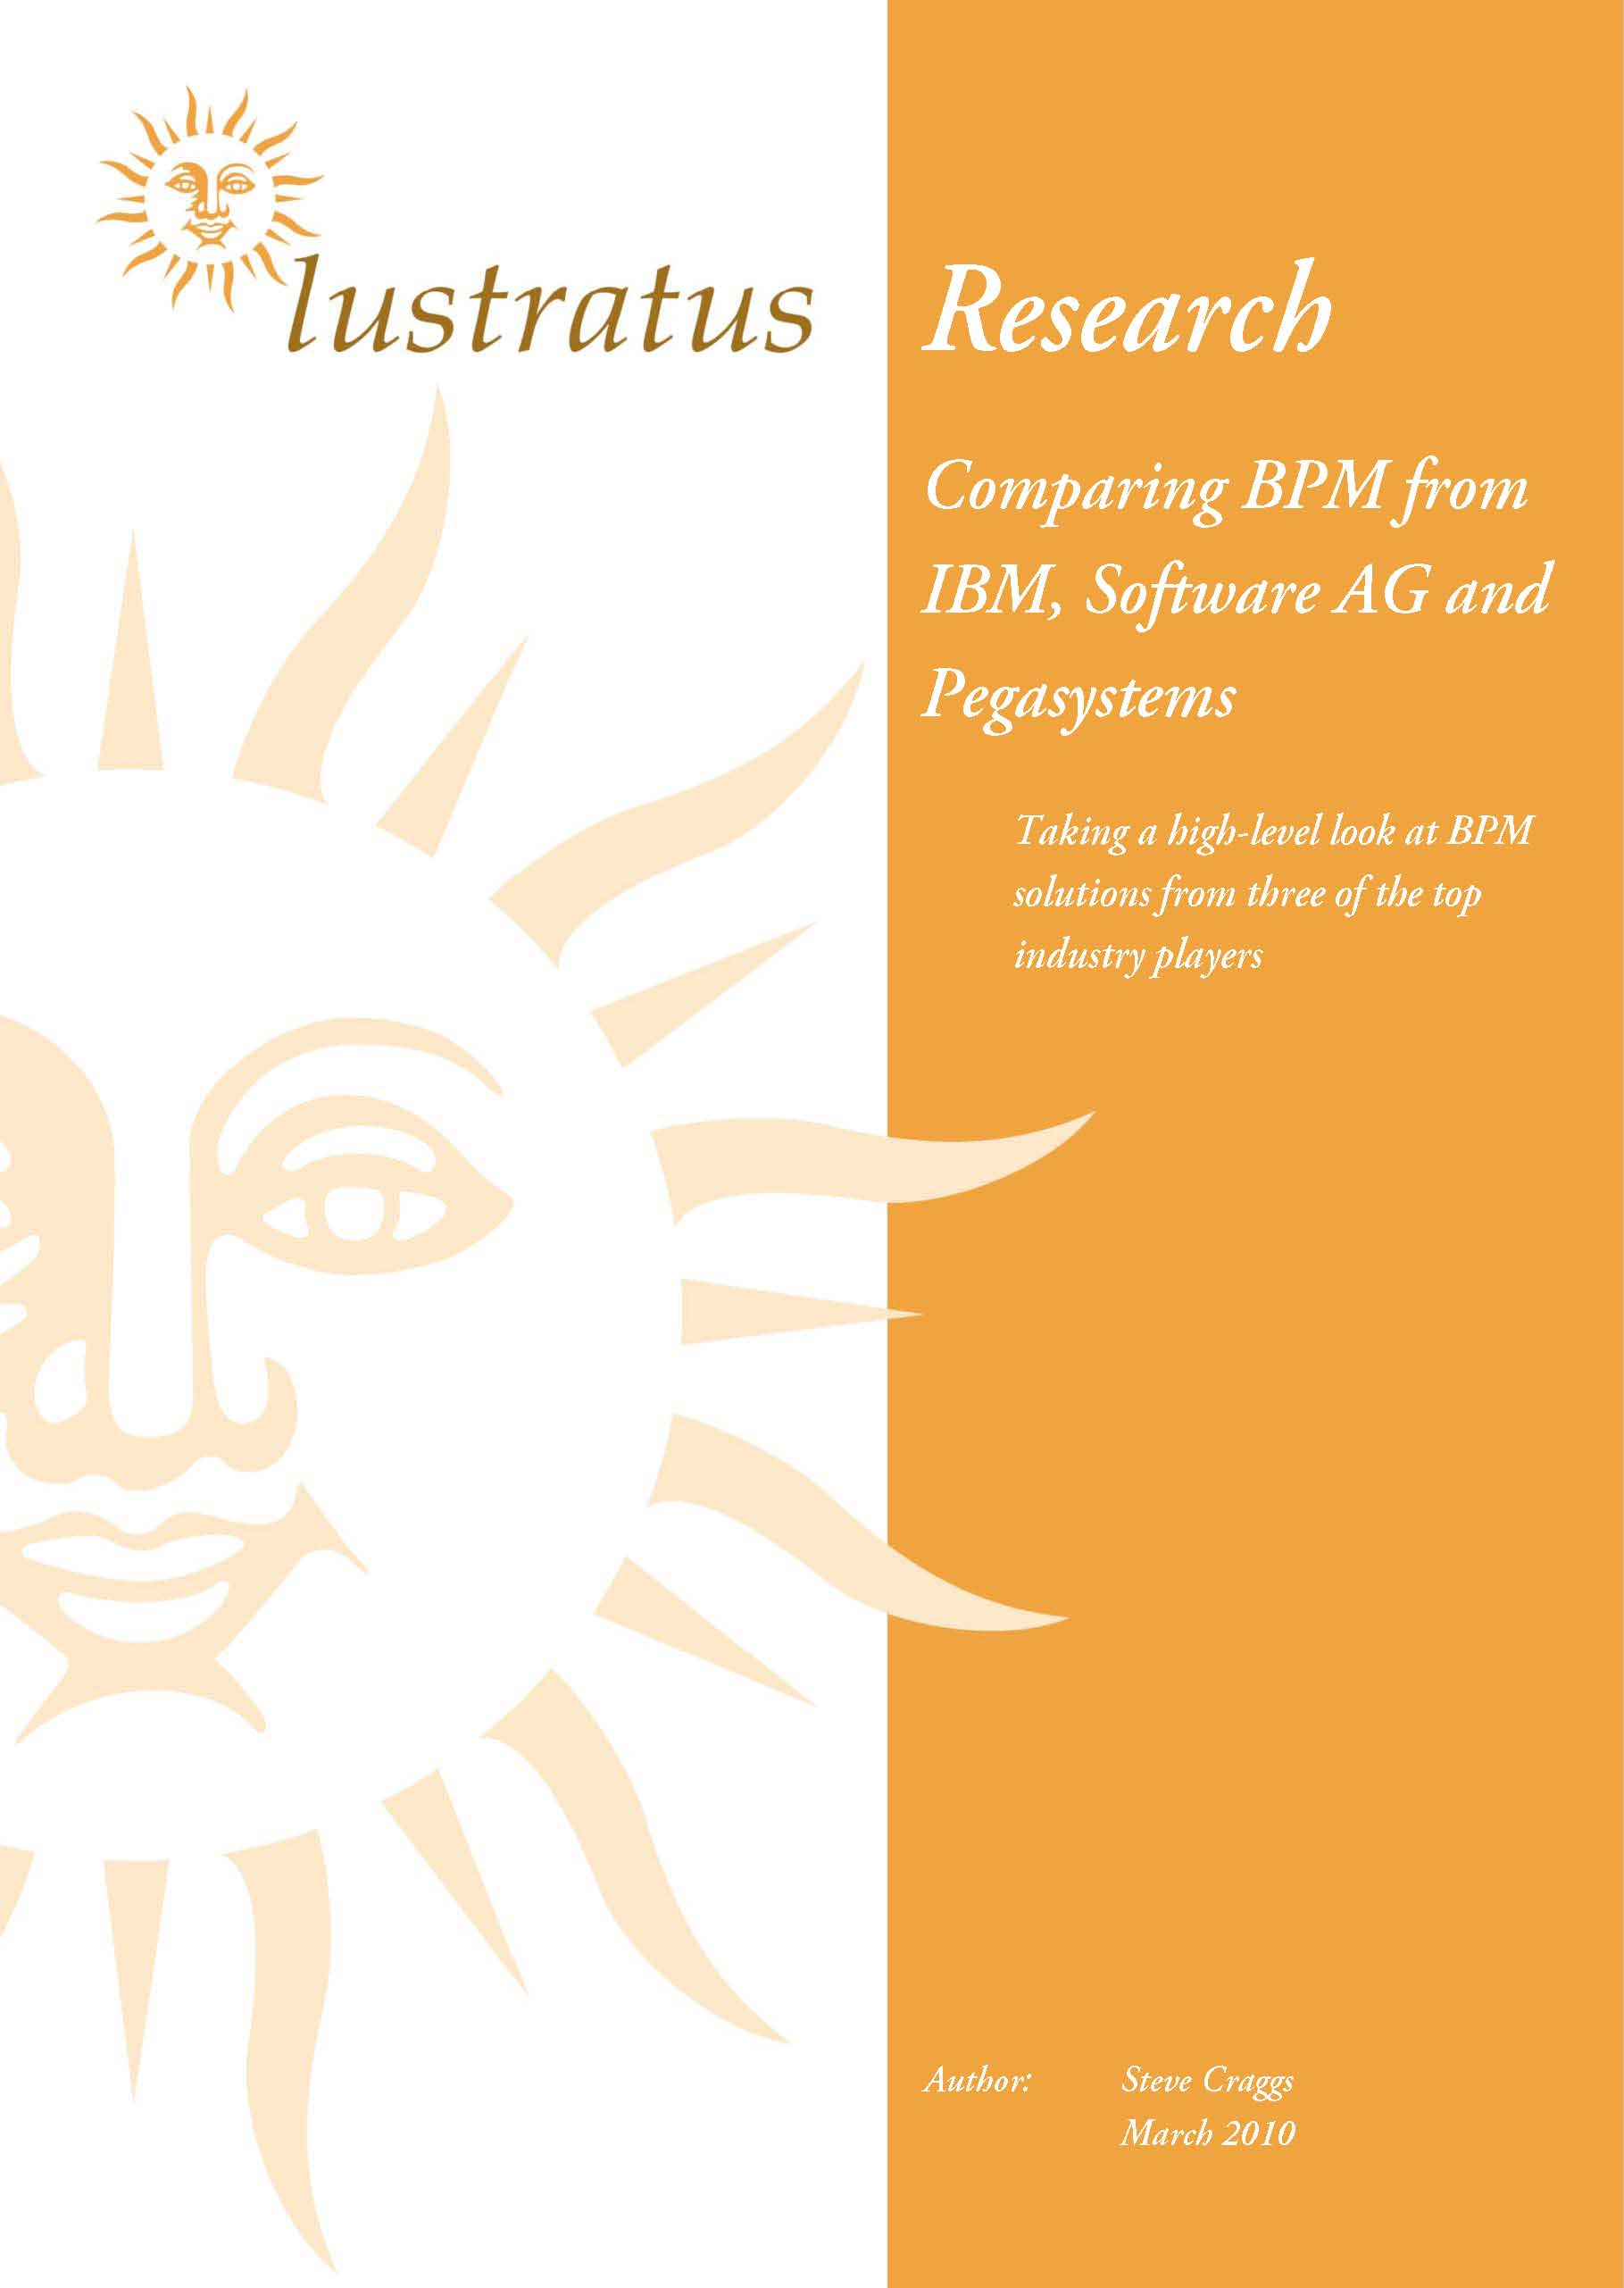 Pages from Comparing BPM from IBM, Software AG and Pegasystems